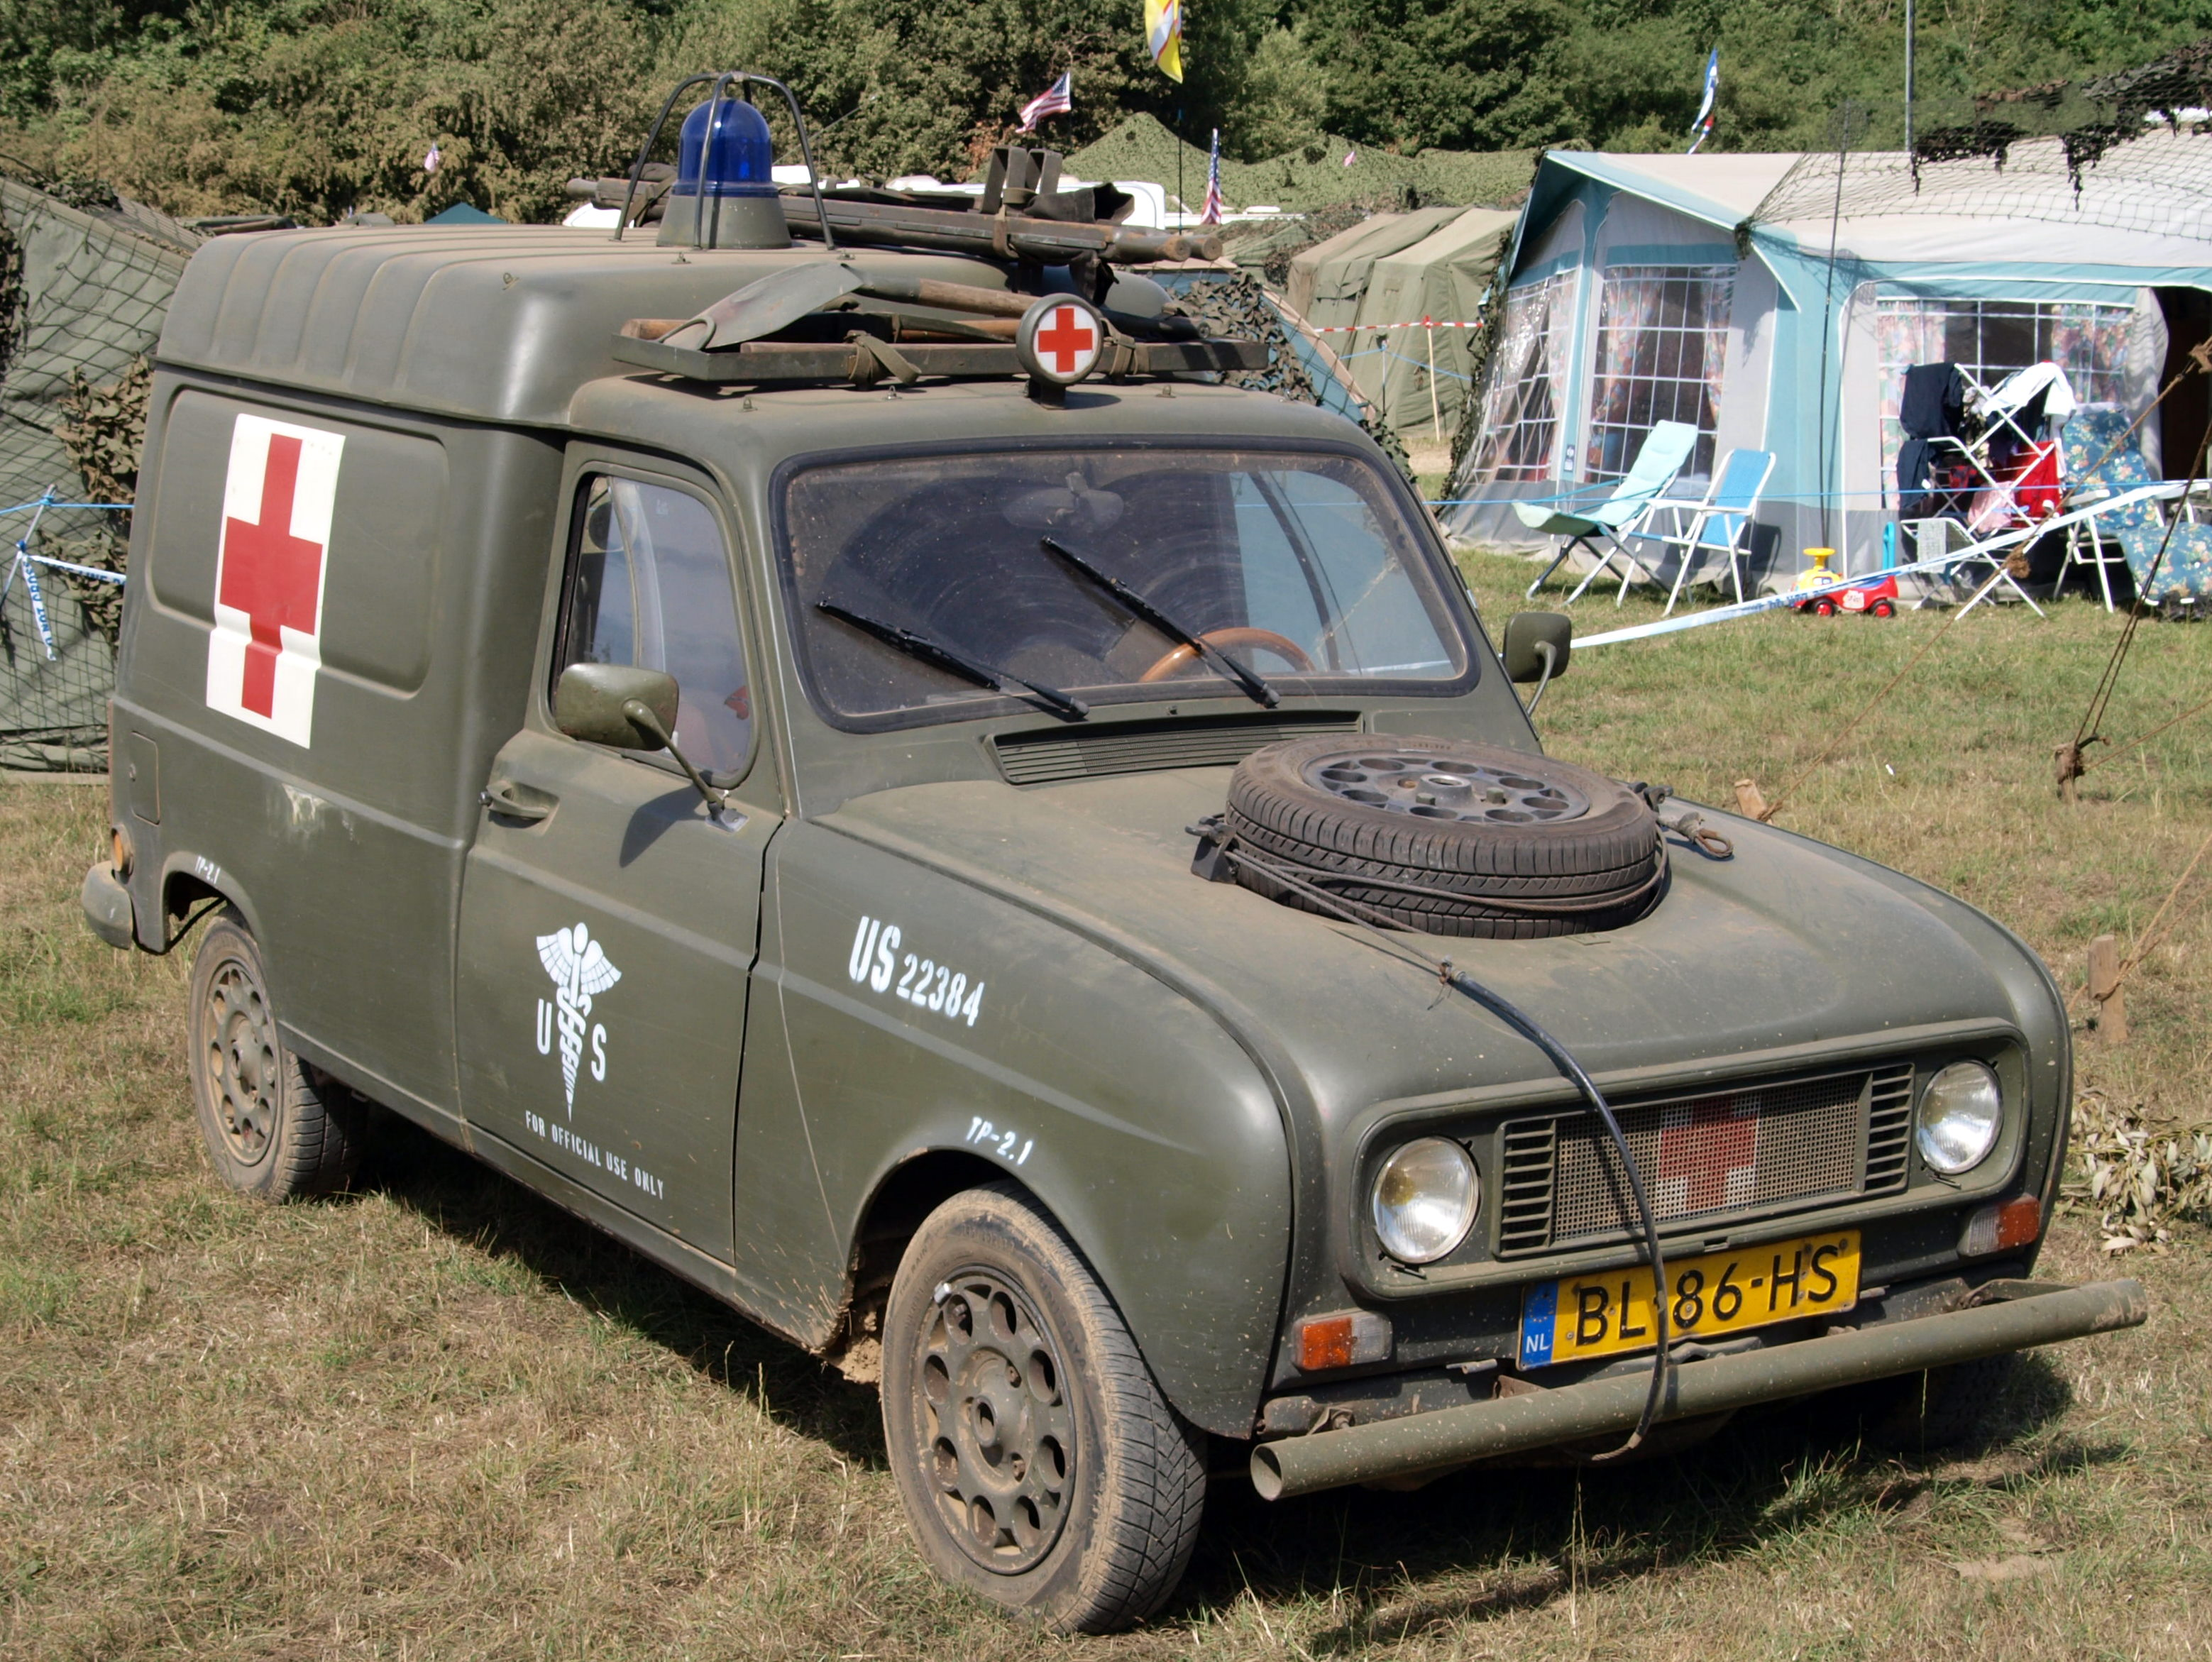 File Renault 4r6 Ambulance 1985 Owner Tjalf Van Schaik Pic1 Jpg Wikimedia Commons